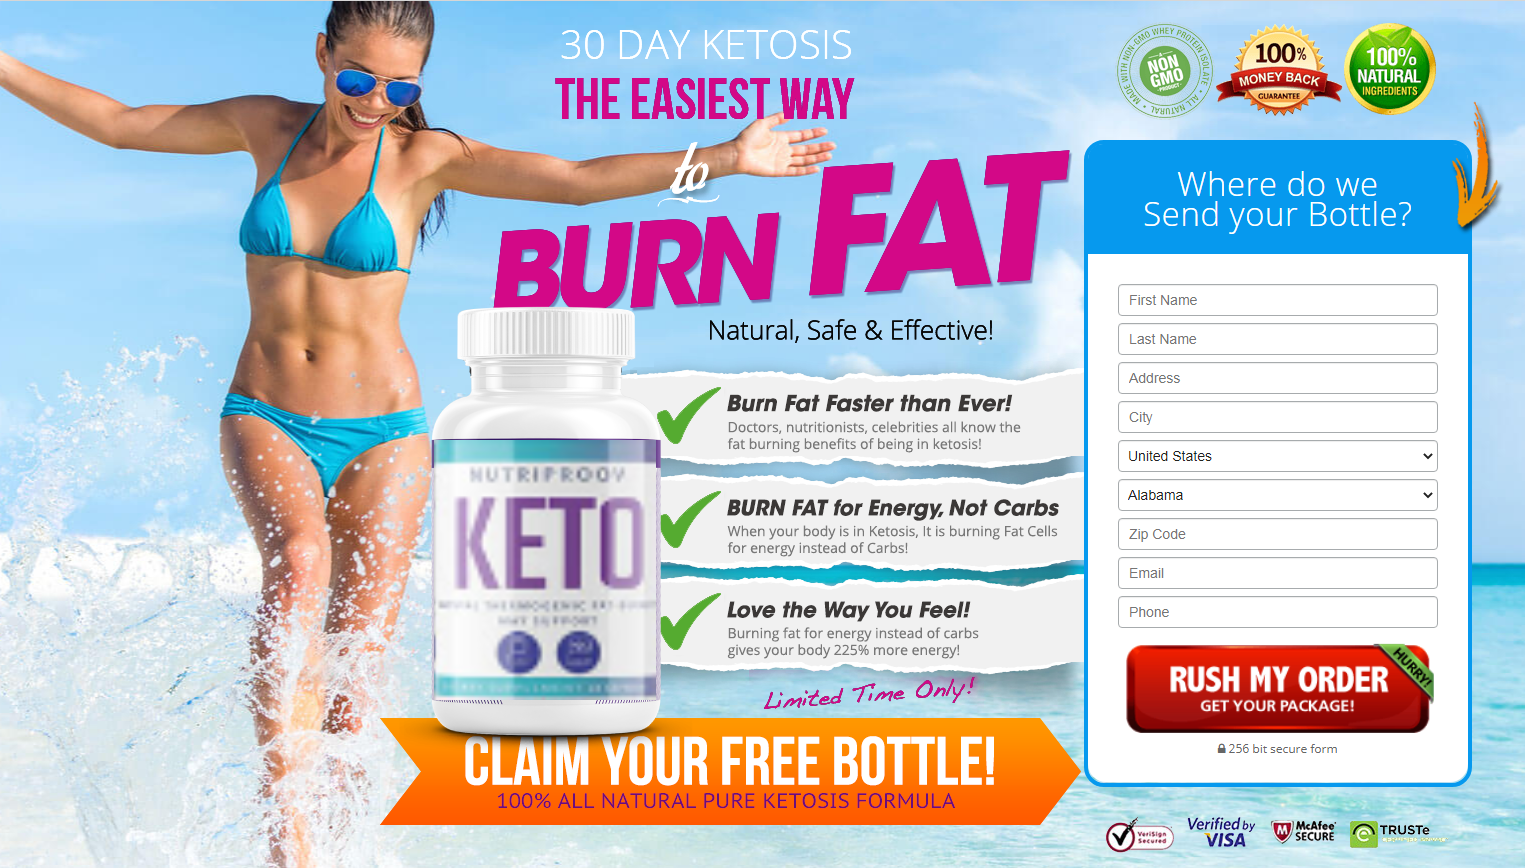 NutriProov Keto | 100% All Natural Ingredients! Try NutriProov Keto Today!